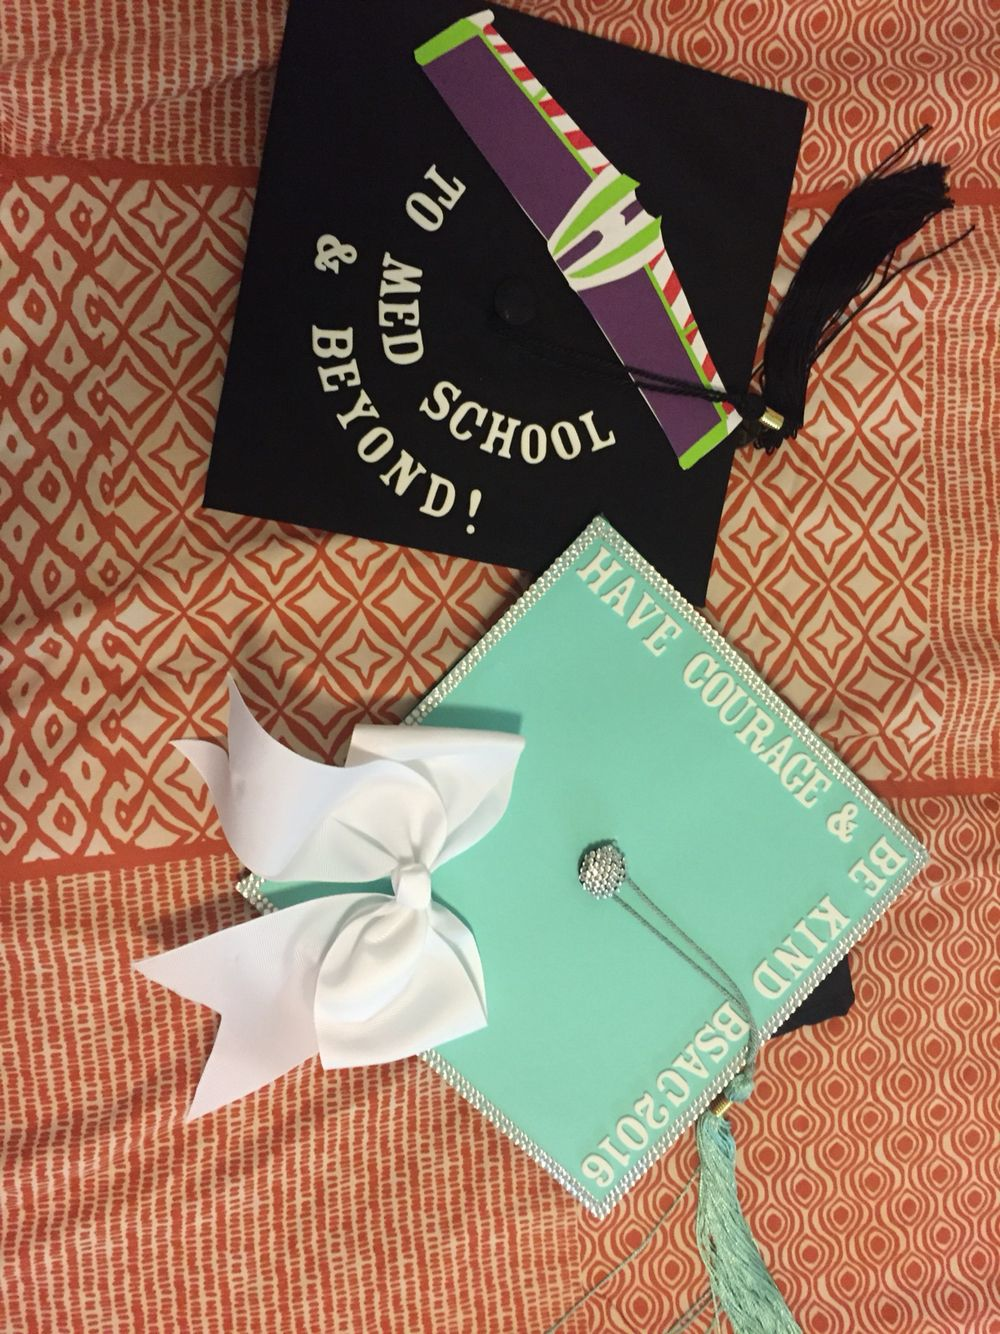 Graduation Caps I Decorated For Me And My Boyfriend Materials